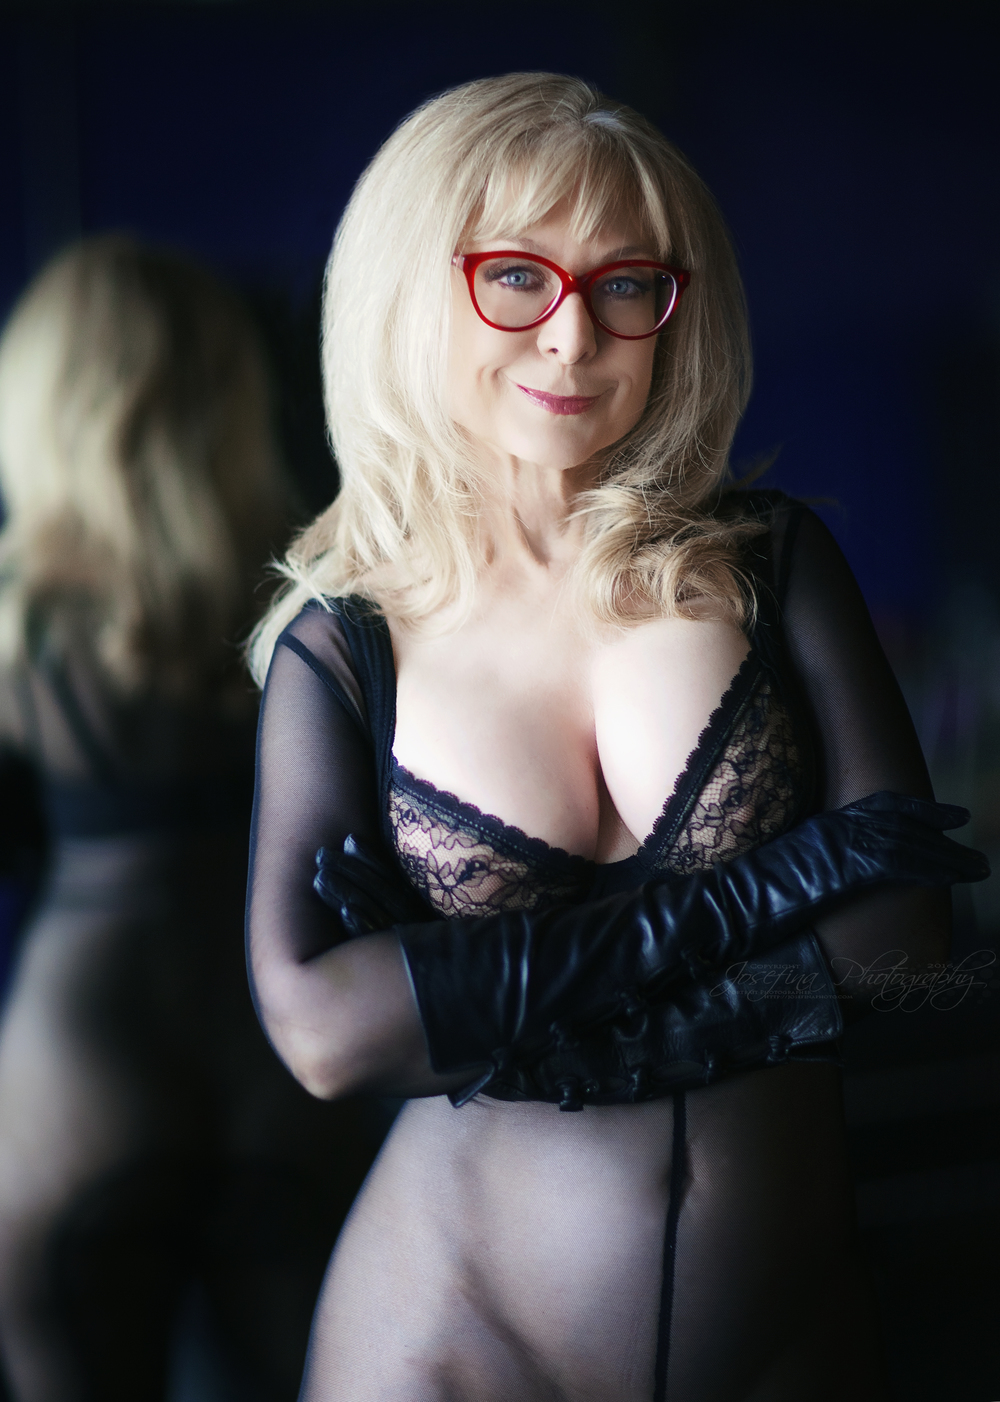 Color Version | M: Nina Hartley | Glasses: Cutler & Gross | Bodysuit: WinterFetish.com | Bra: Wolford Fashion | Gloves: Bergdorfs | Copyright © Josefina Photography 2016